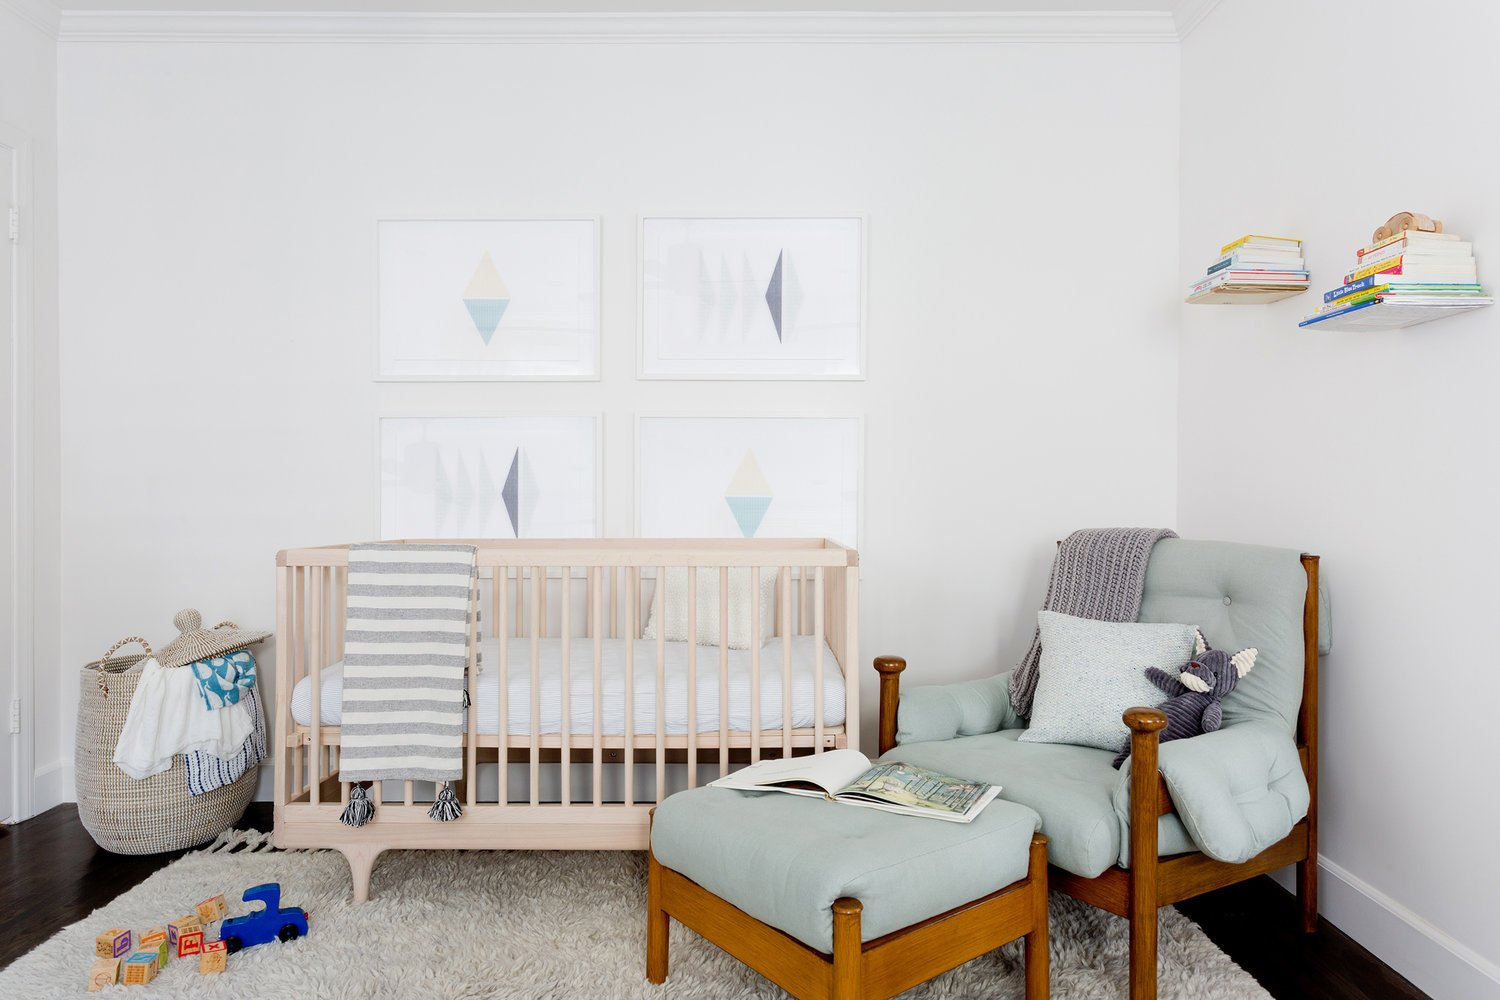 Tagged: Kids Room, Bedroom, Bed, Chair, Neutral Gender, Dark Hardwood Floor, and Toddler Age.  Stearns Residence by Jette Creative